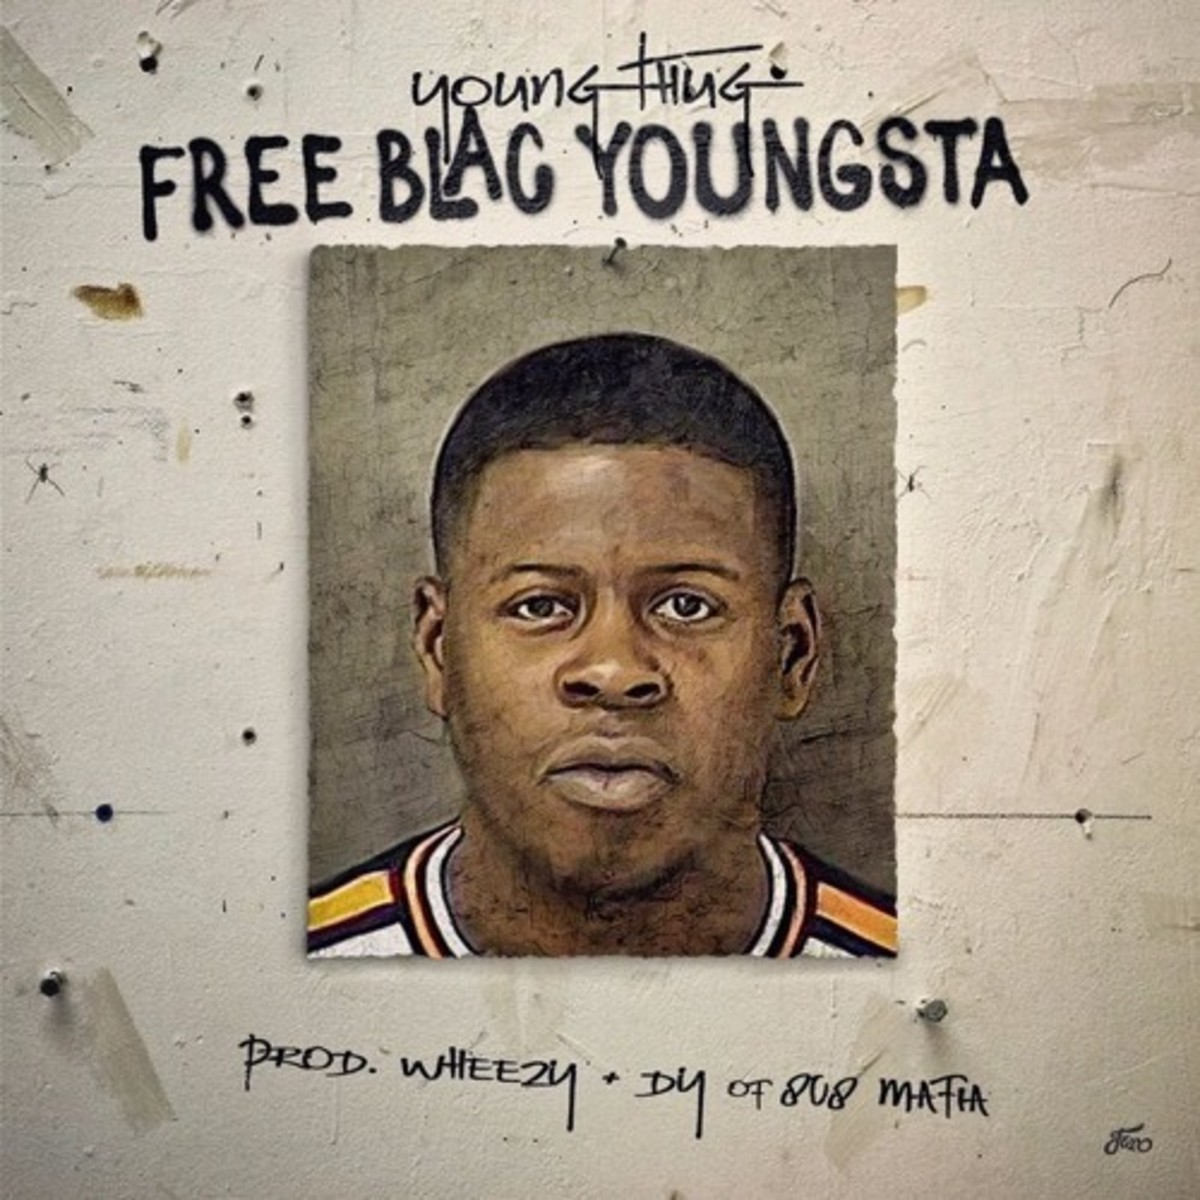 young-thug-free-blac-youngsta.jpg